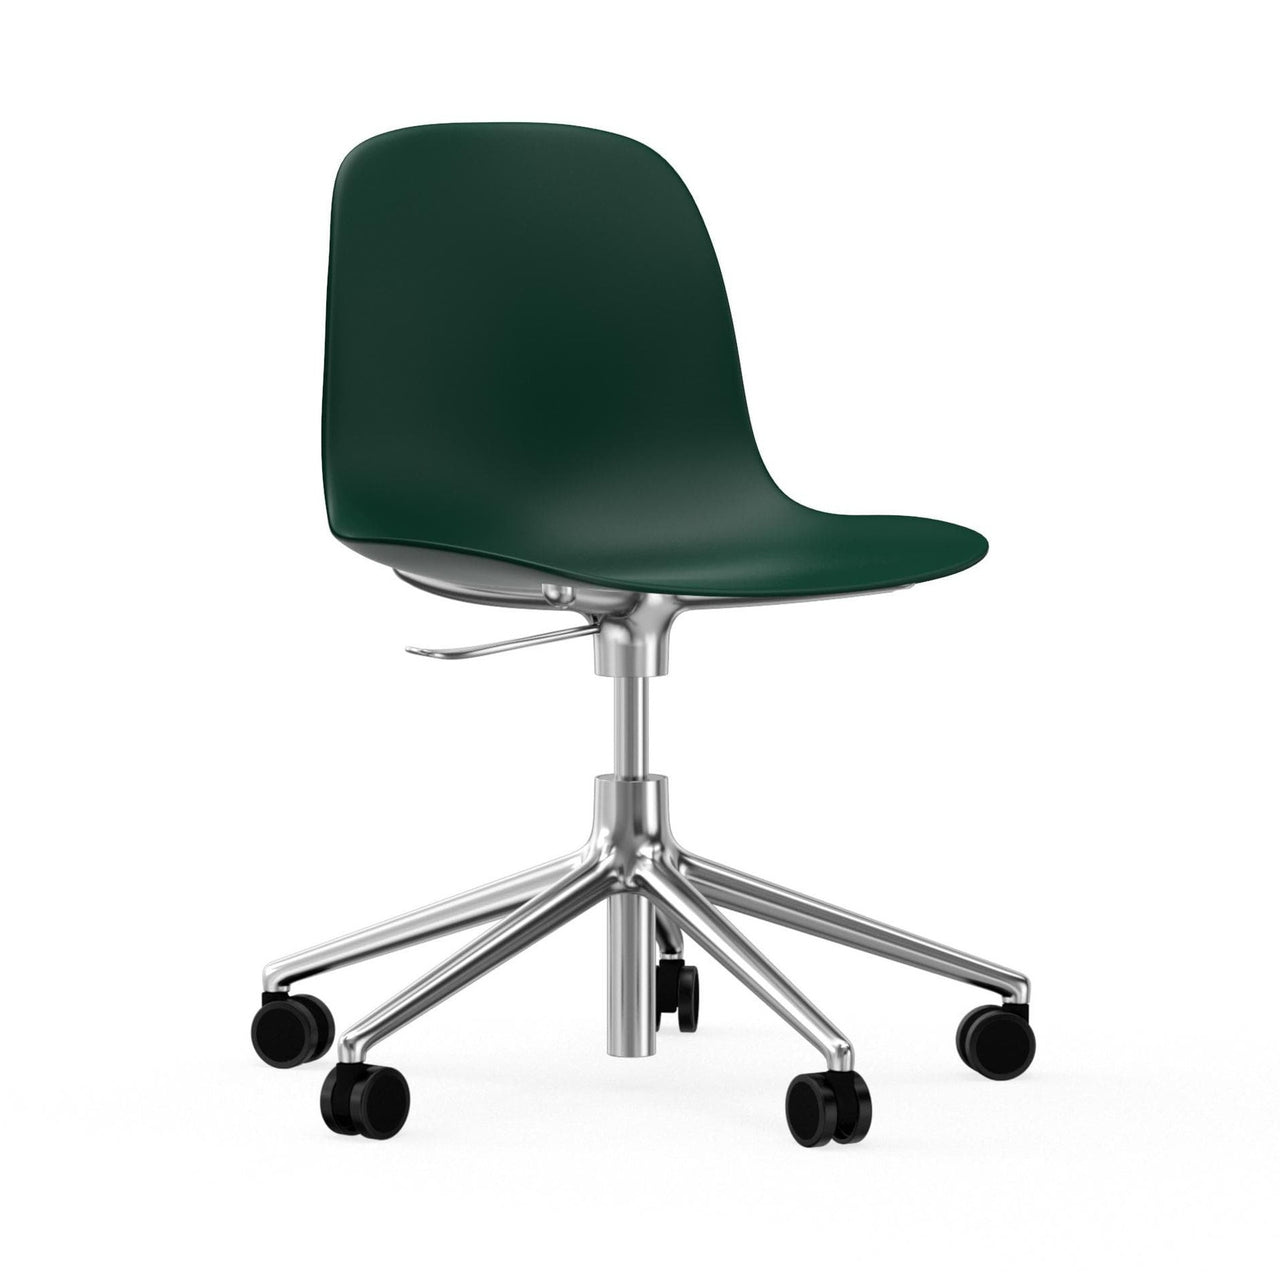 Form Chair: Gaslift